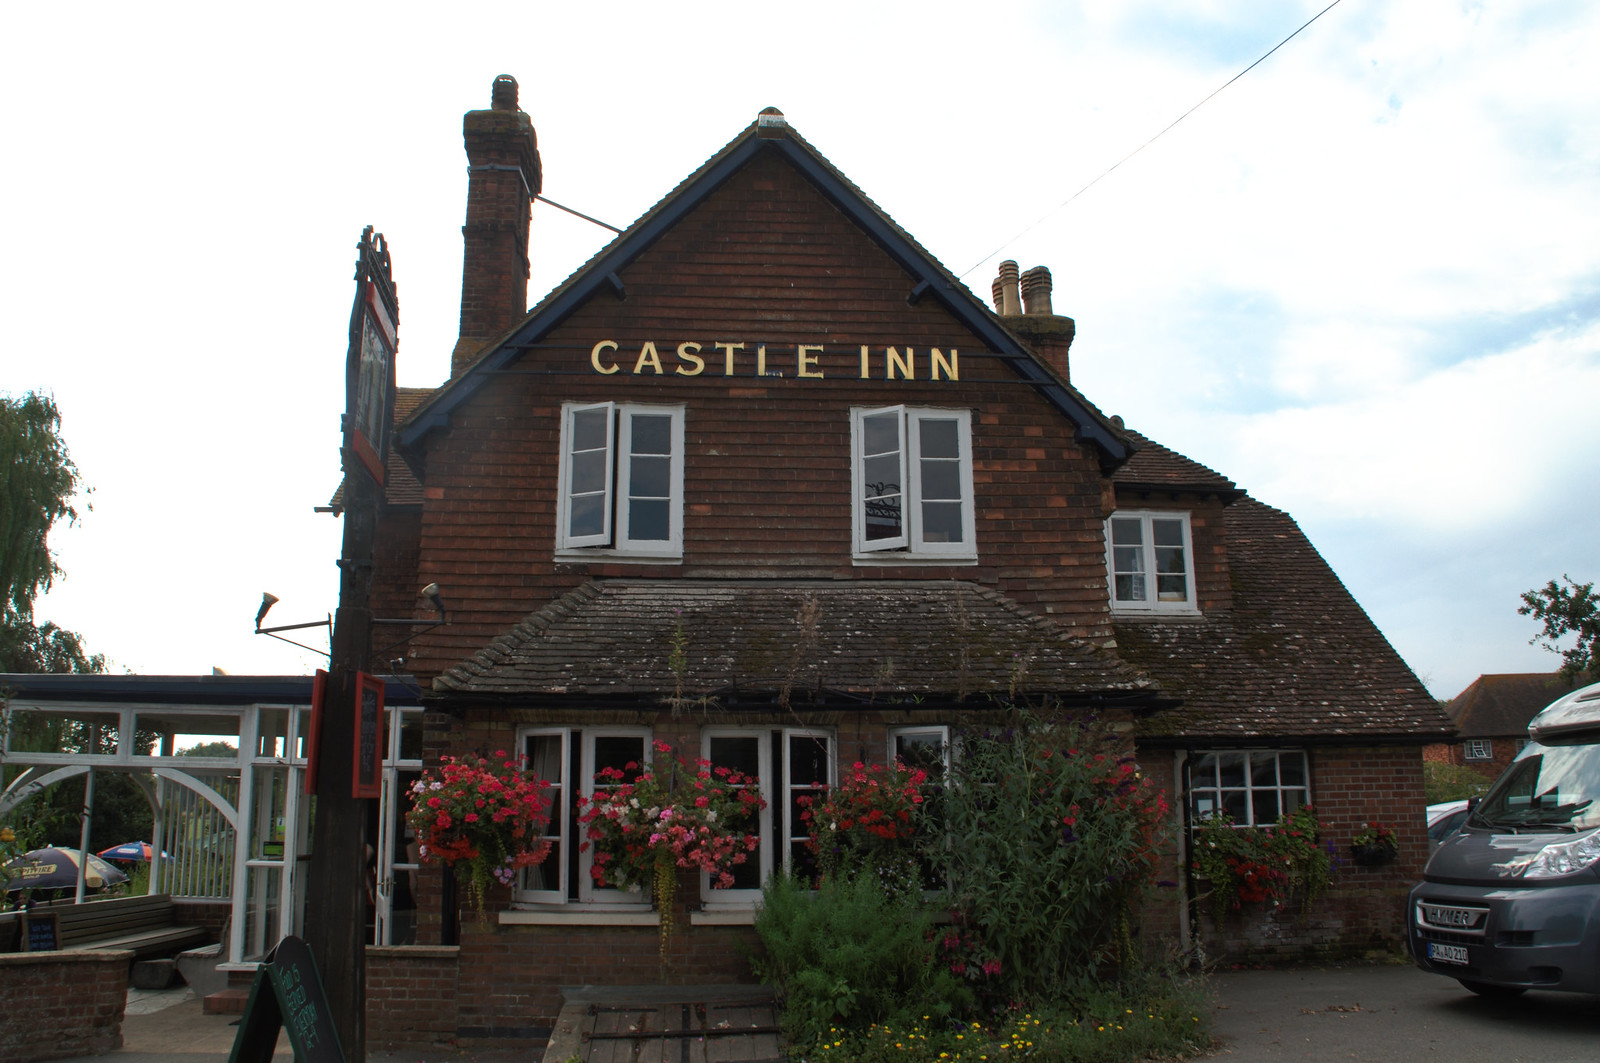 Castle Inn Bodiam